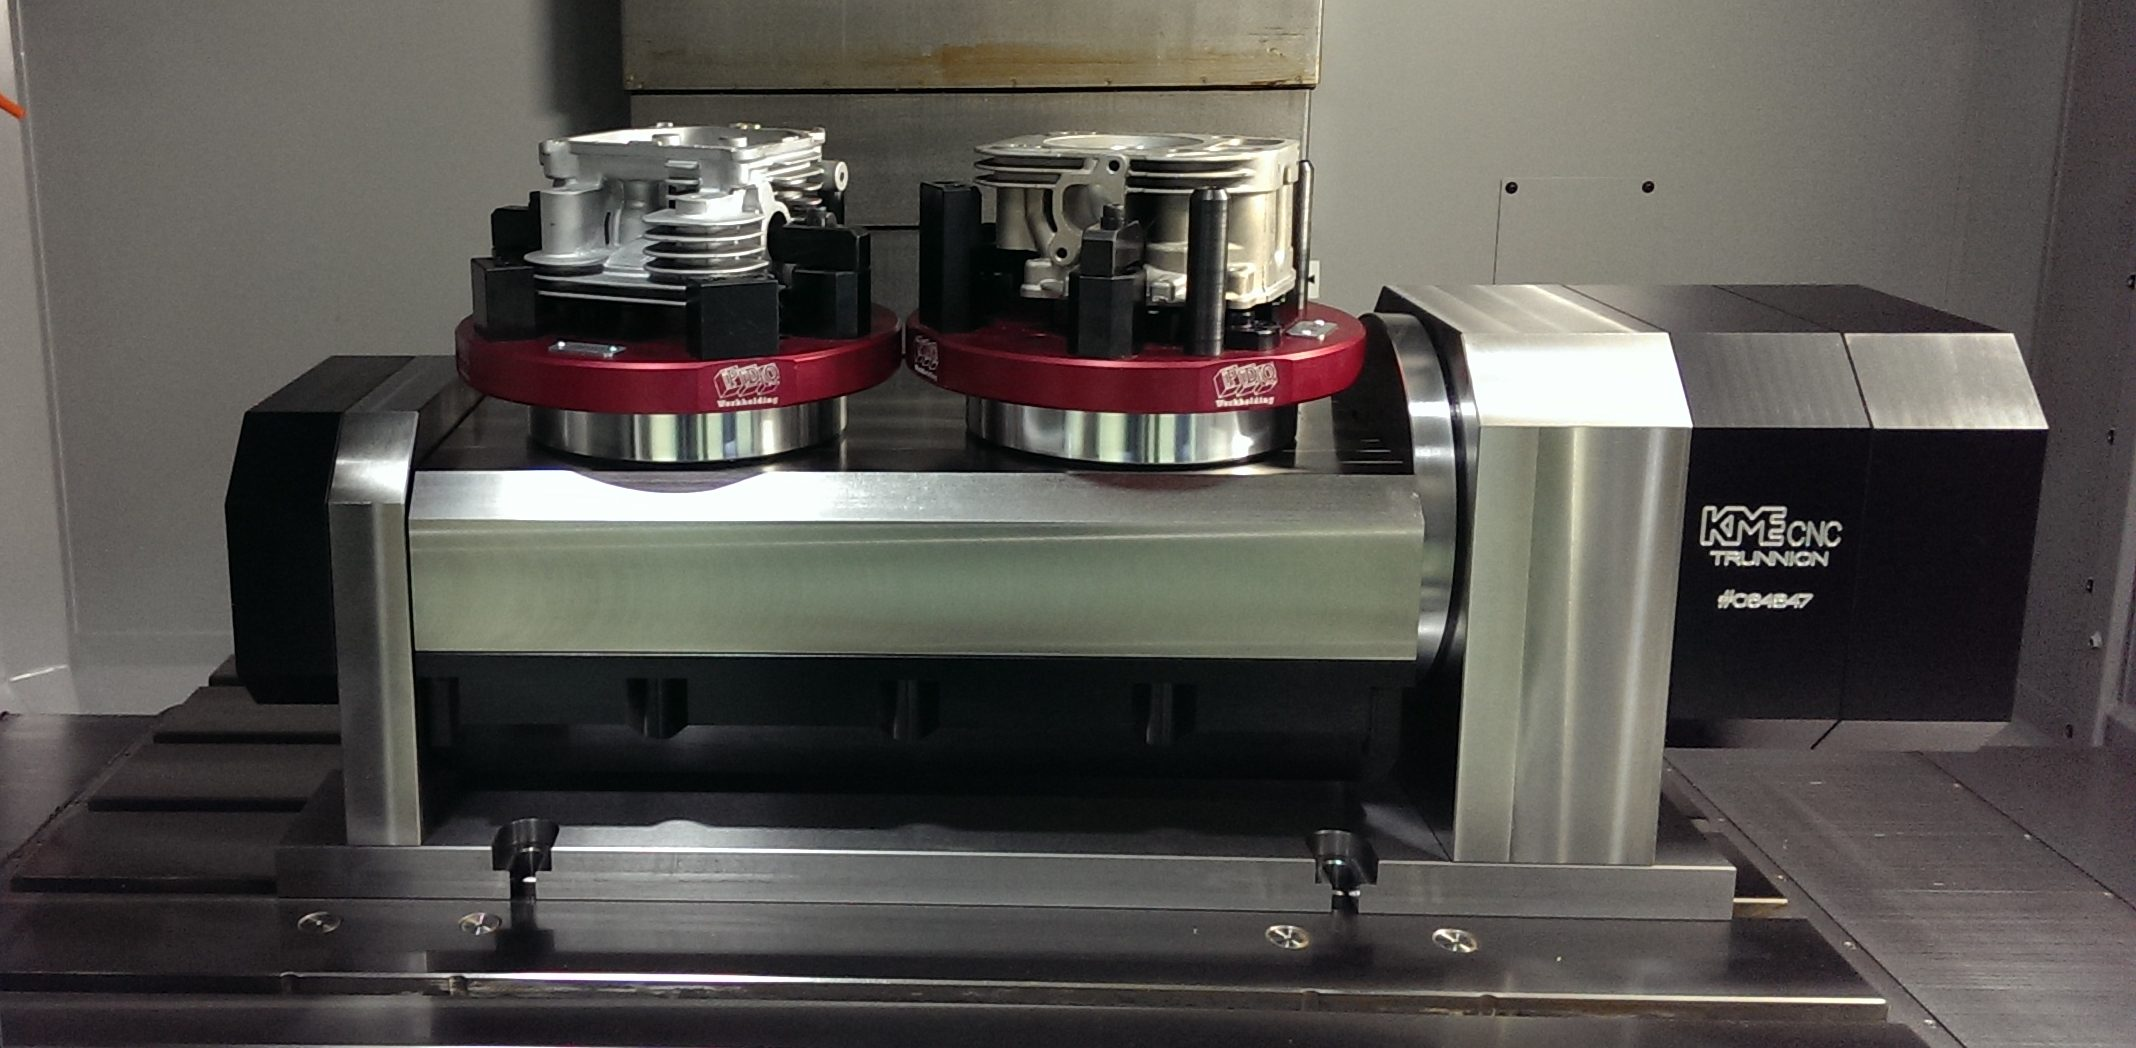 Trunnion Tables For 5 Axis Machining Vmcs Kme Cnc 5